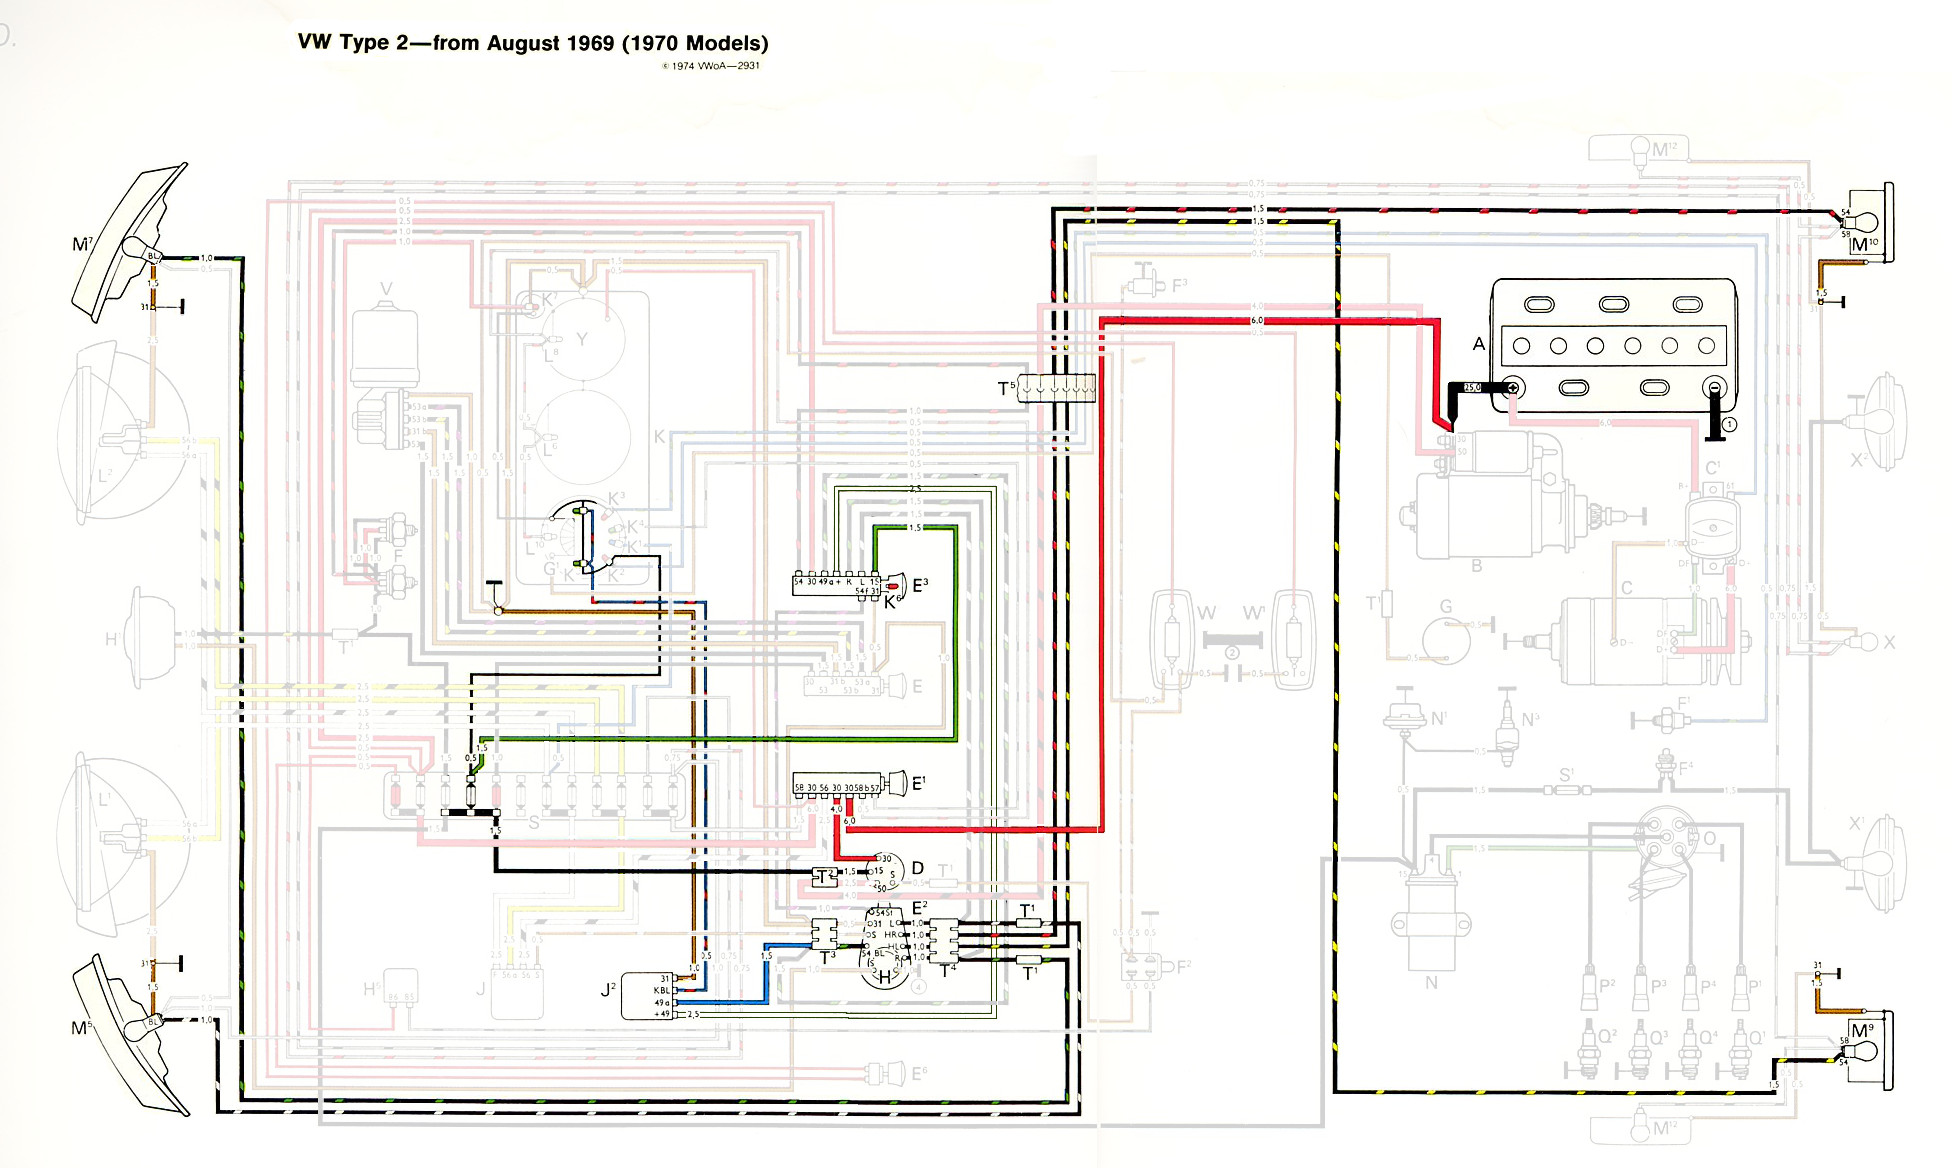 1970bus_signals thesamba com type 2 wiring diagrams VW Bus Ignition Coil at cos-gaming.co